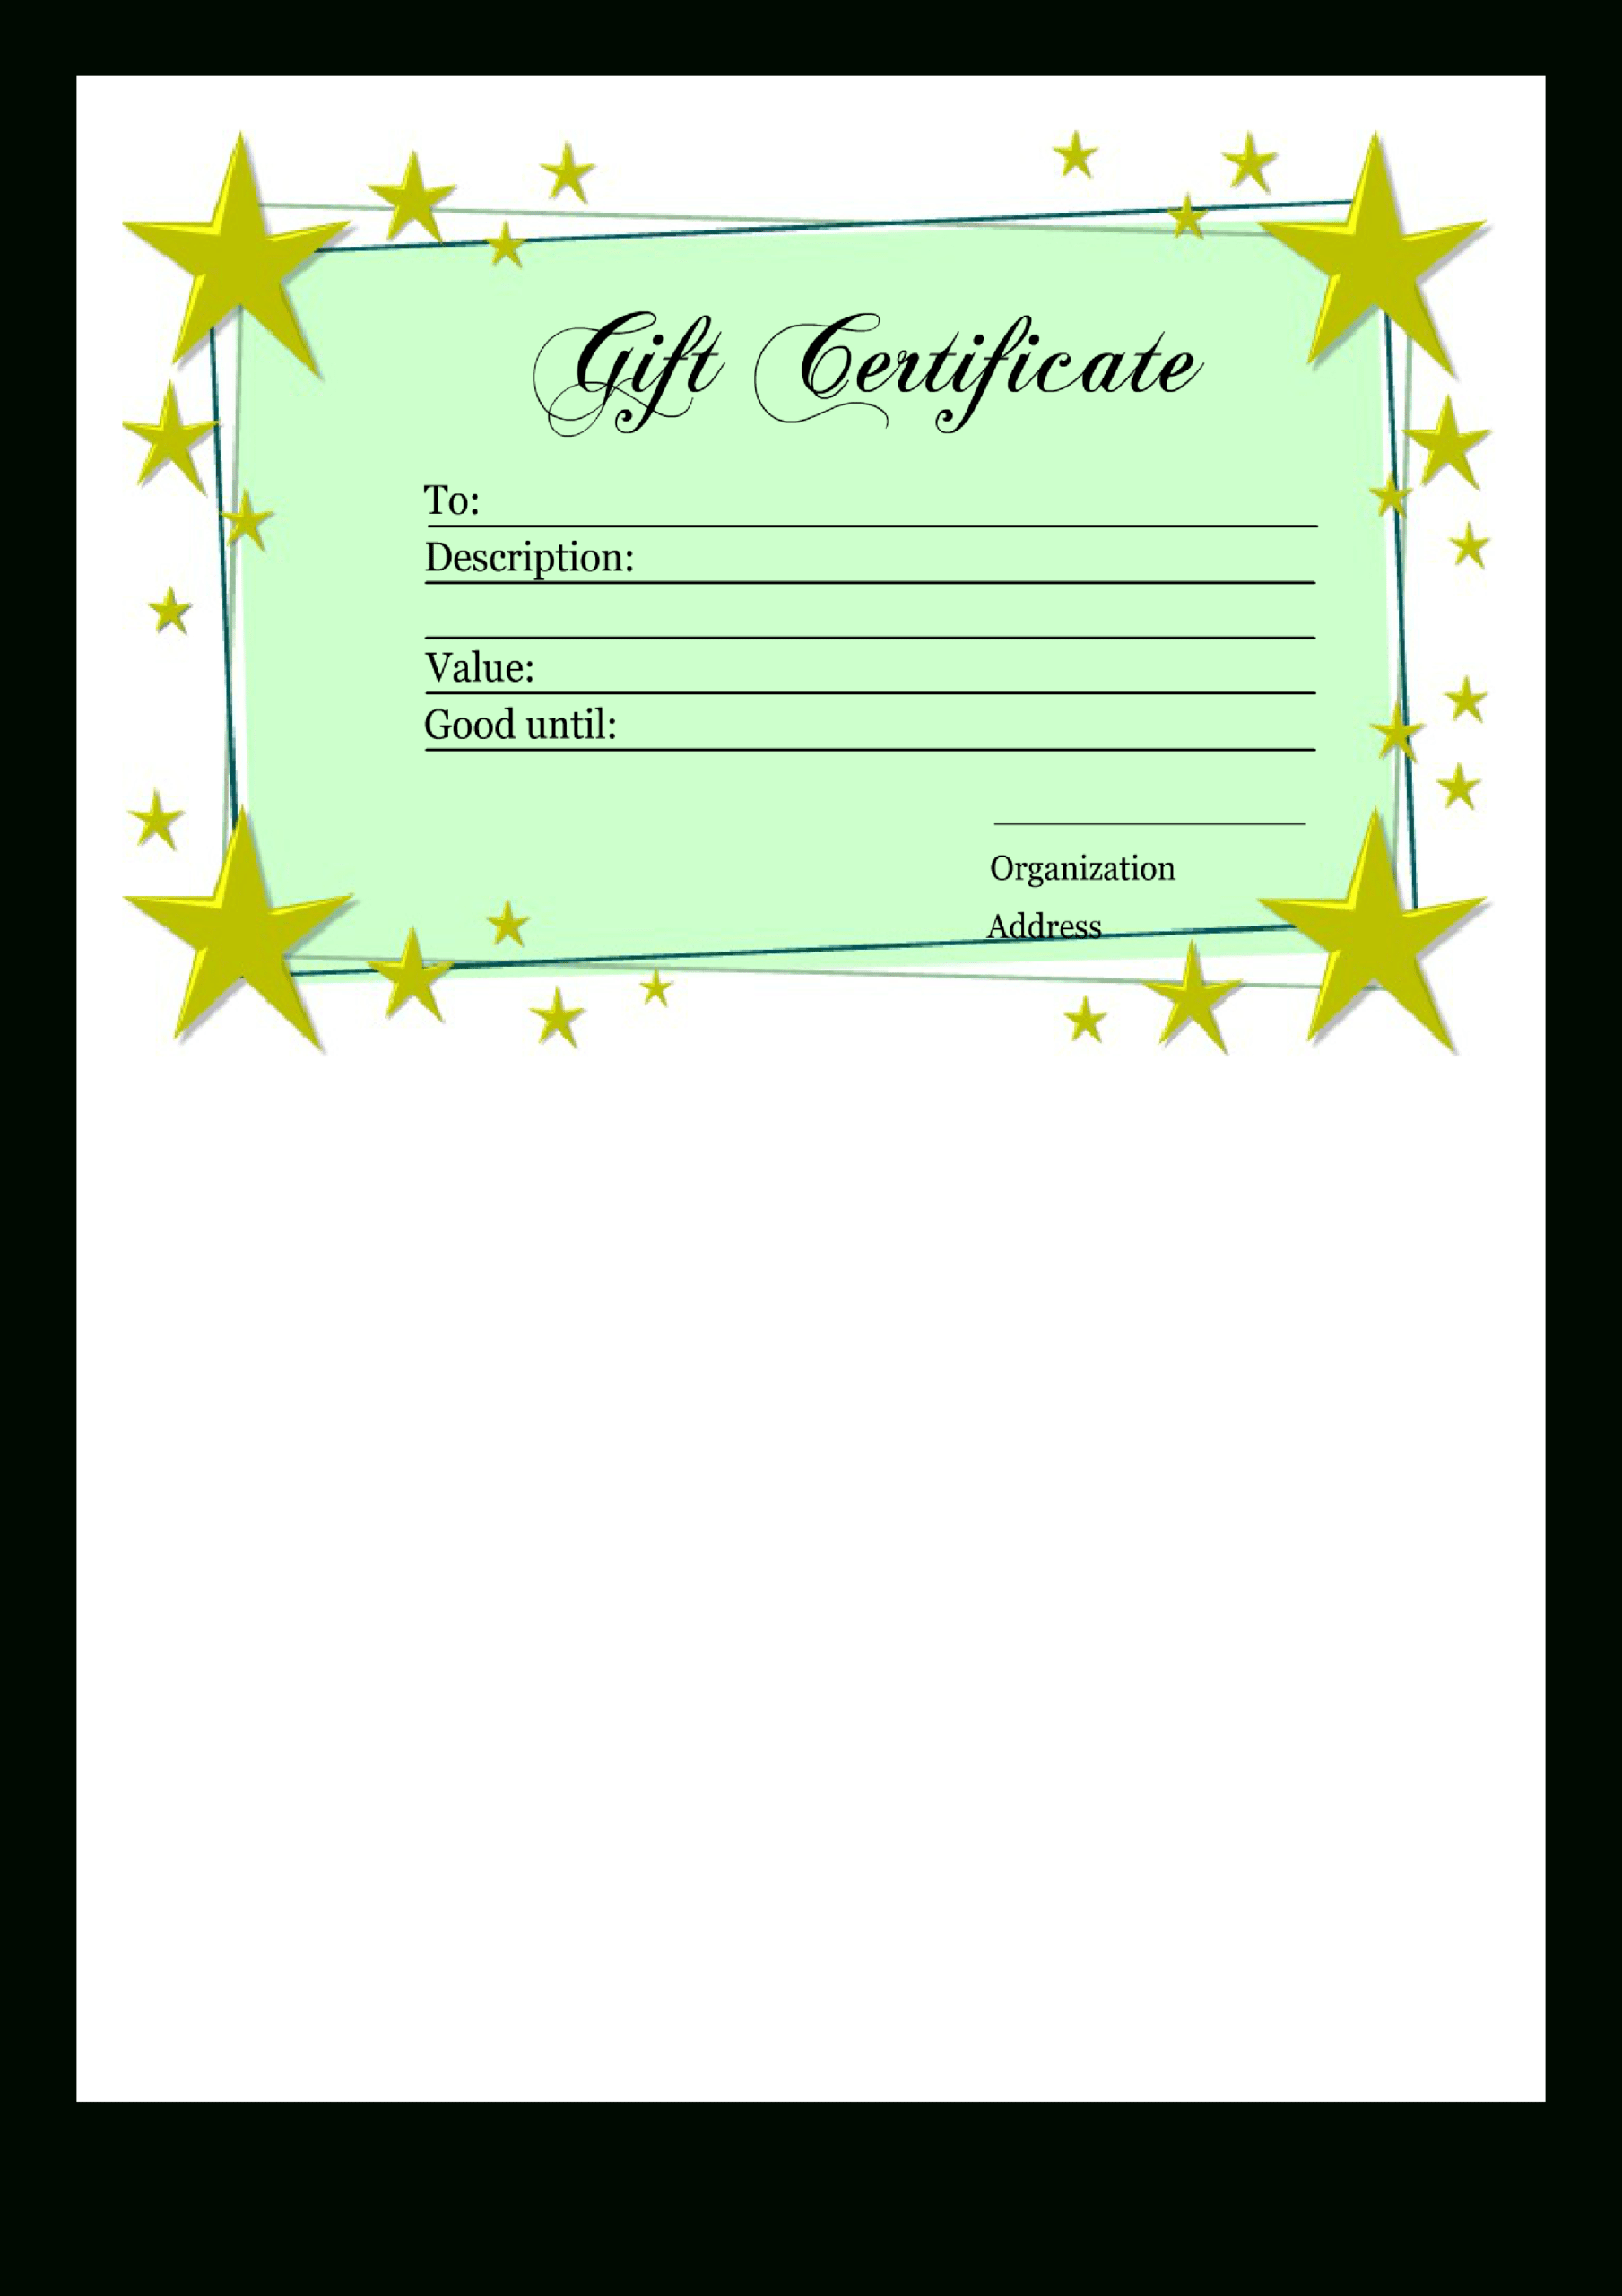 Homemade Gift Certificate Template | Templates At Pertaining To Homemade Gift Certificate Template